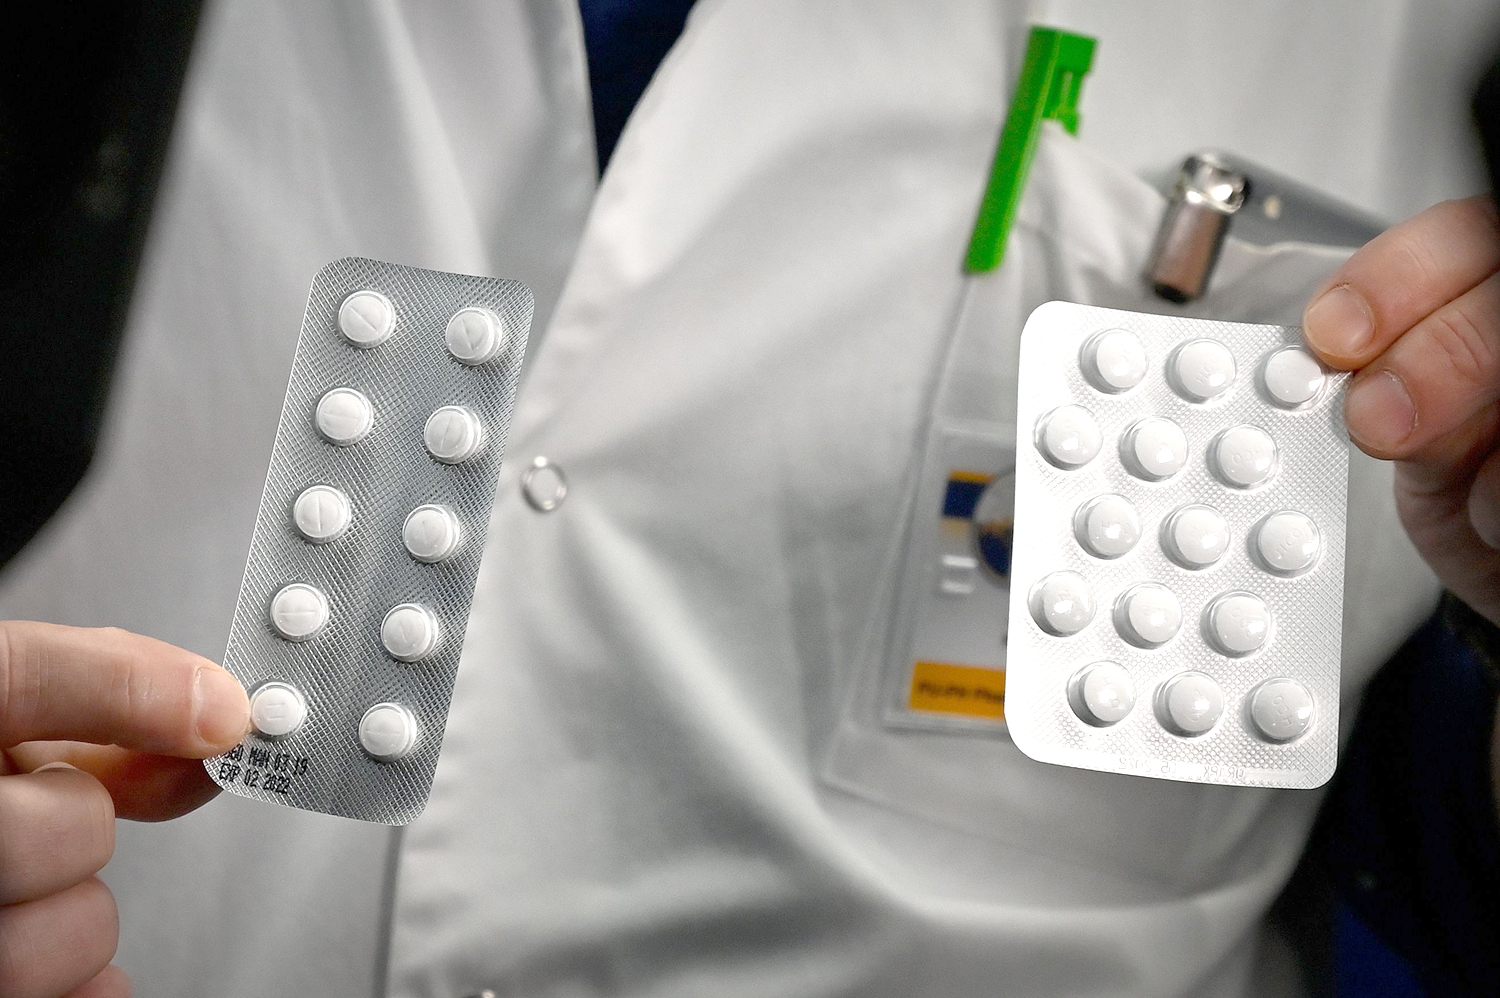 chloroquine and Plaqueril tablets